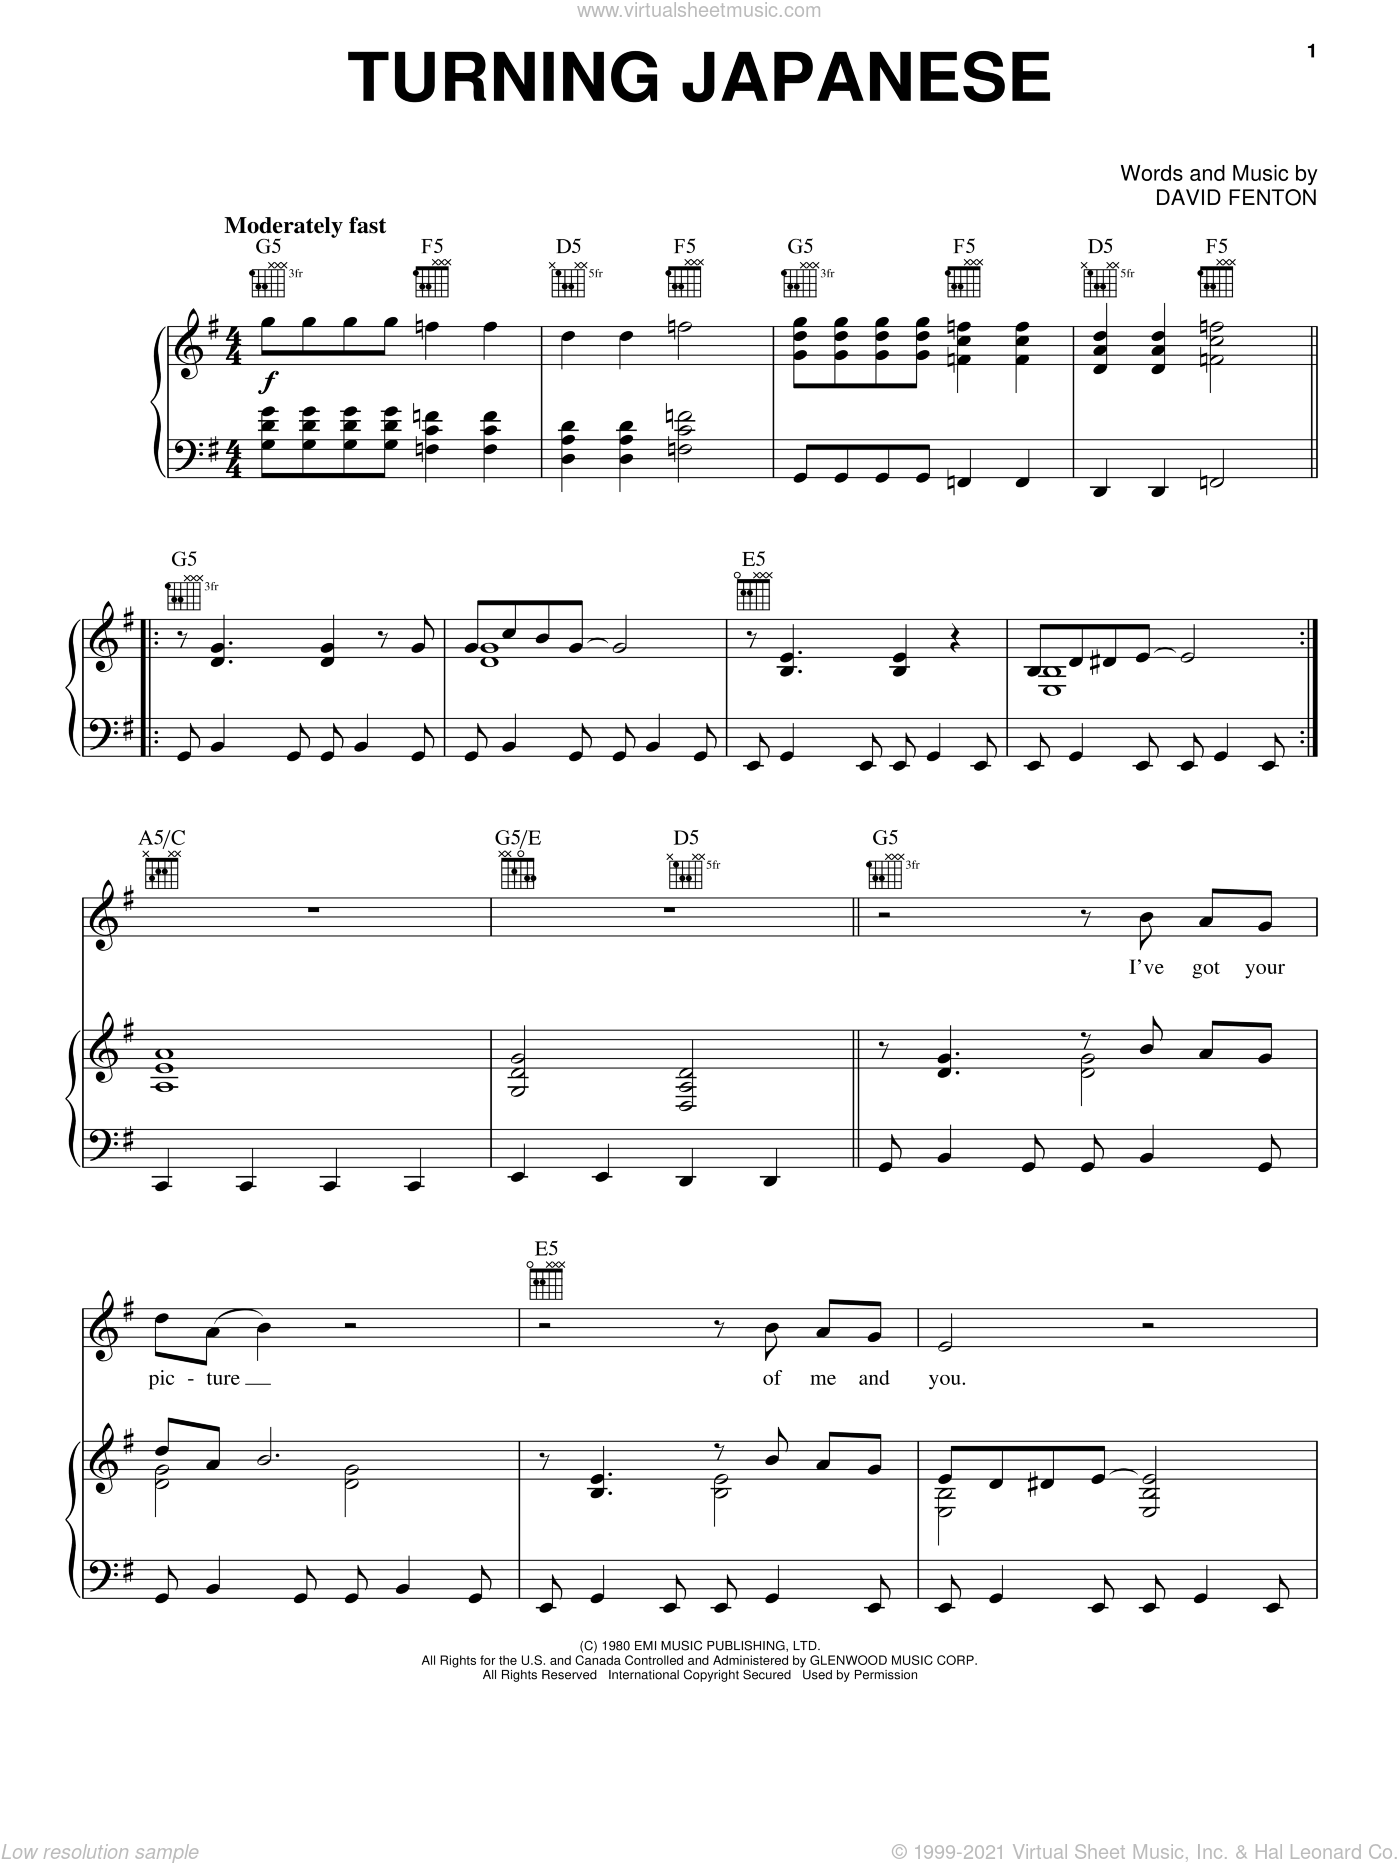 Turning Japanese sheet music for voice, piano or guitar by David Fenton